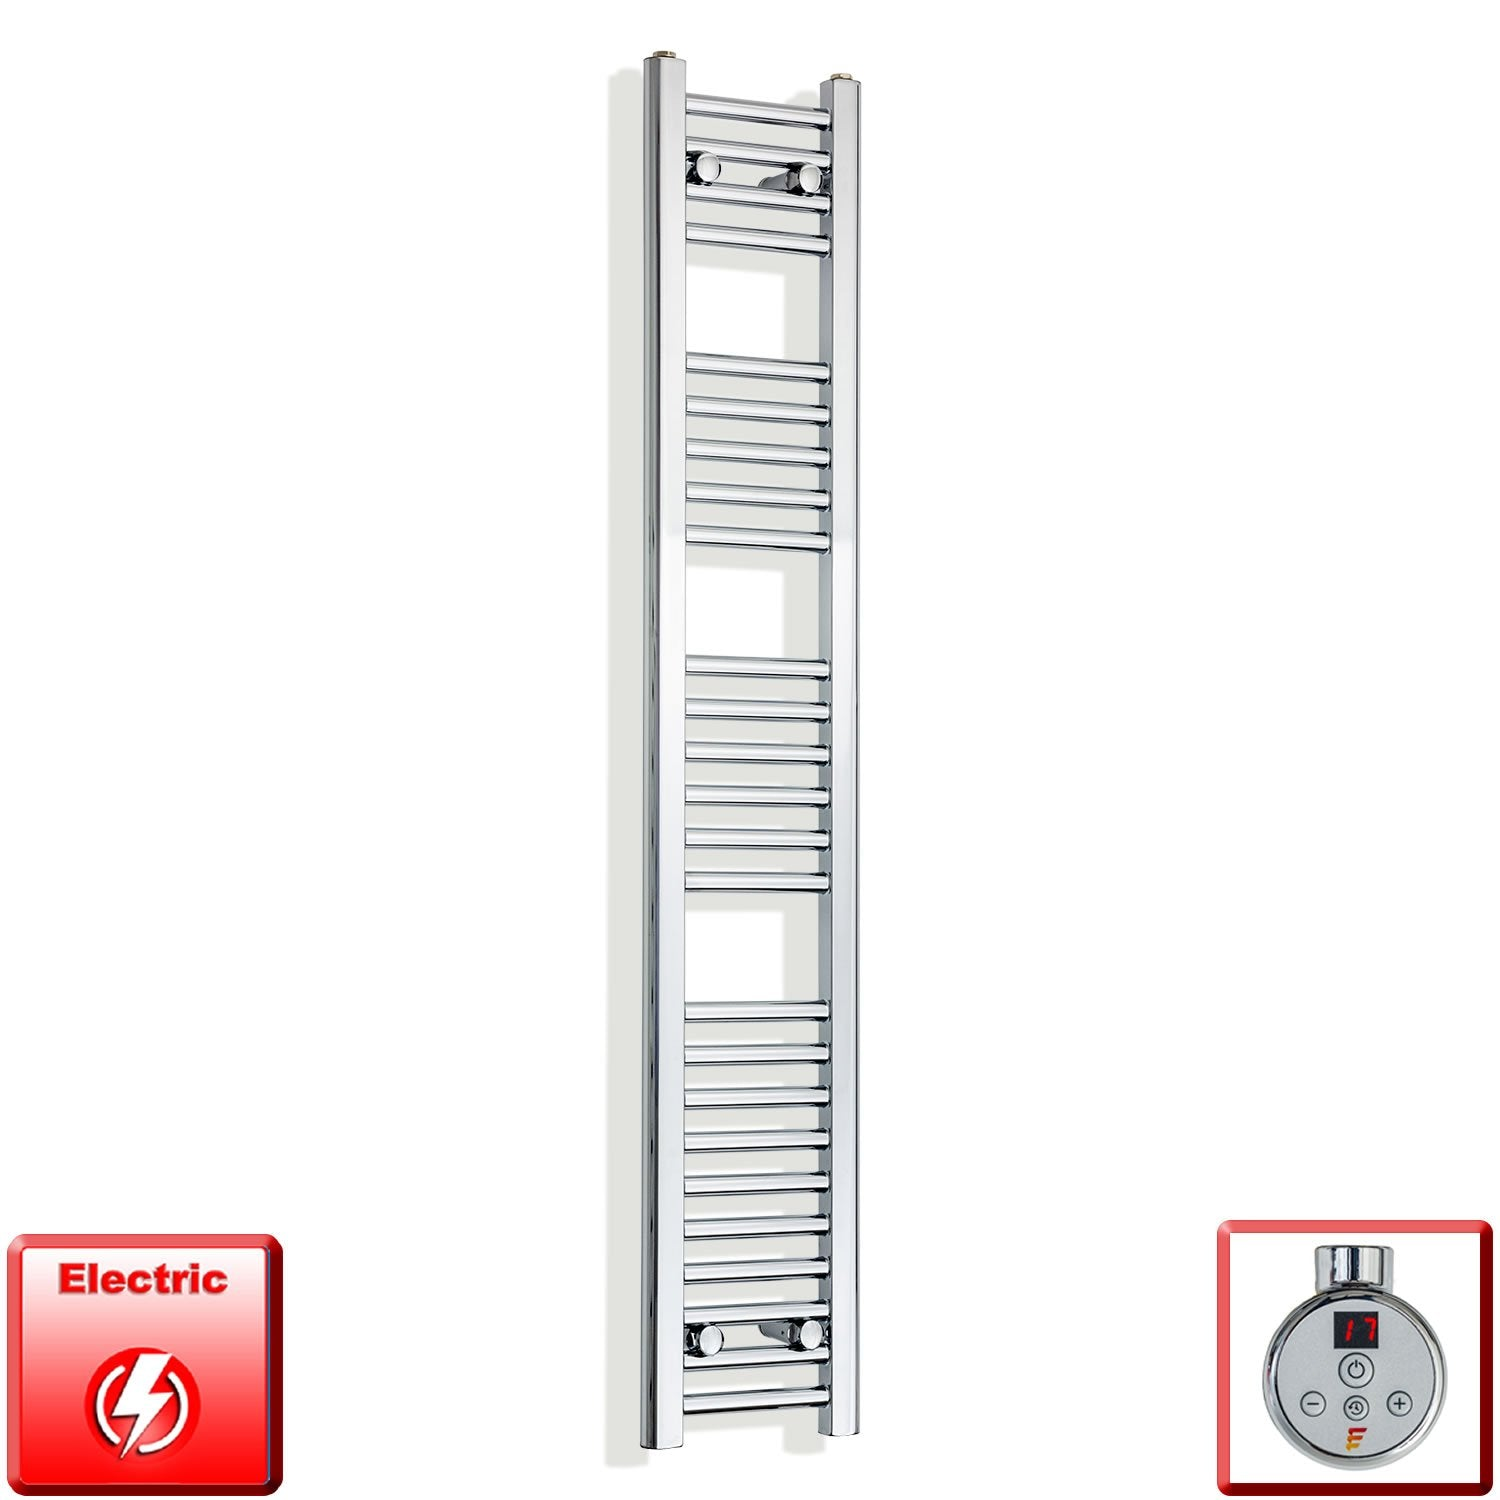 250mm Wide 1400mm High Flat Chrome Pre-Filled Electric Heated Towel Rail Radiator HTR,DGT Thermostatic